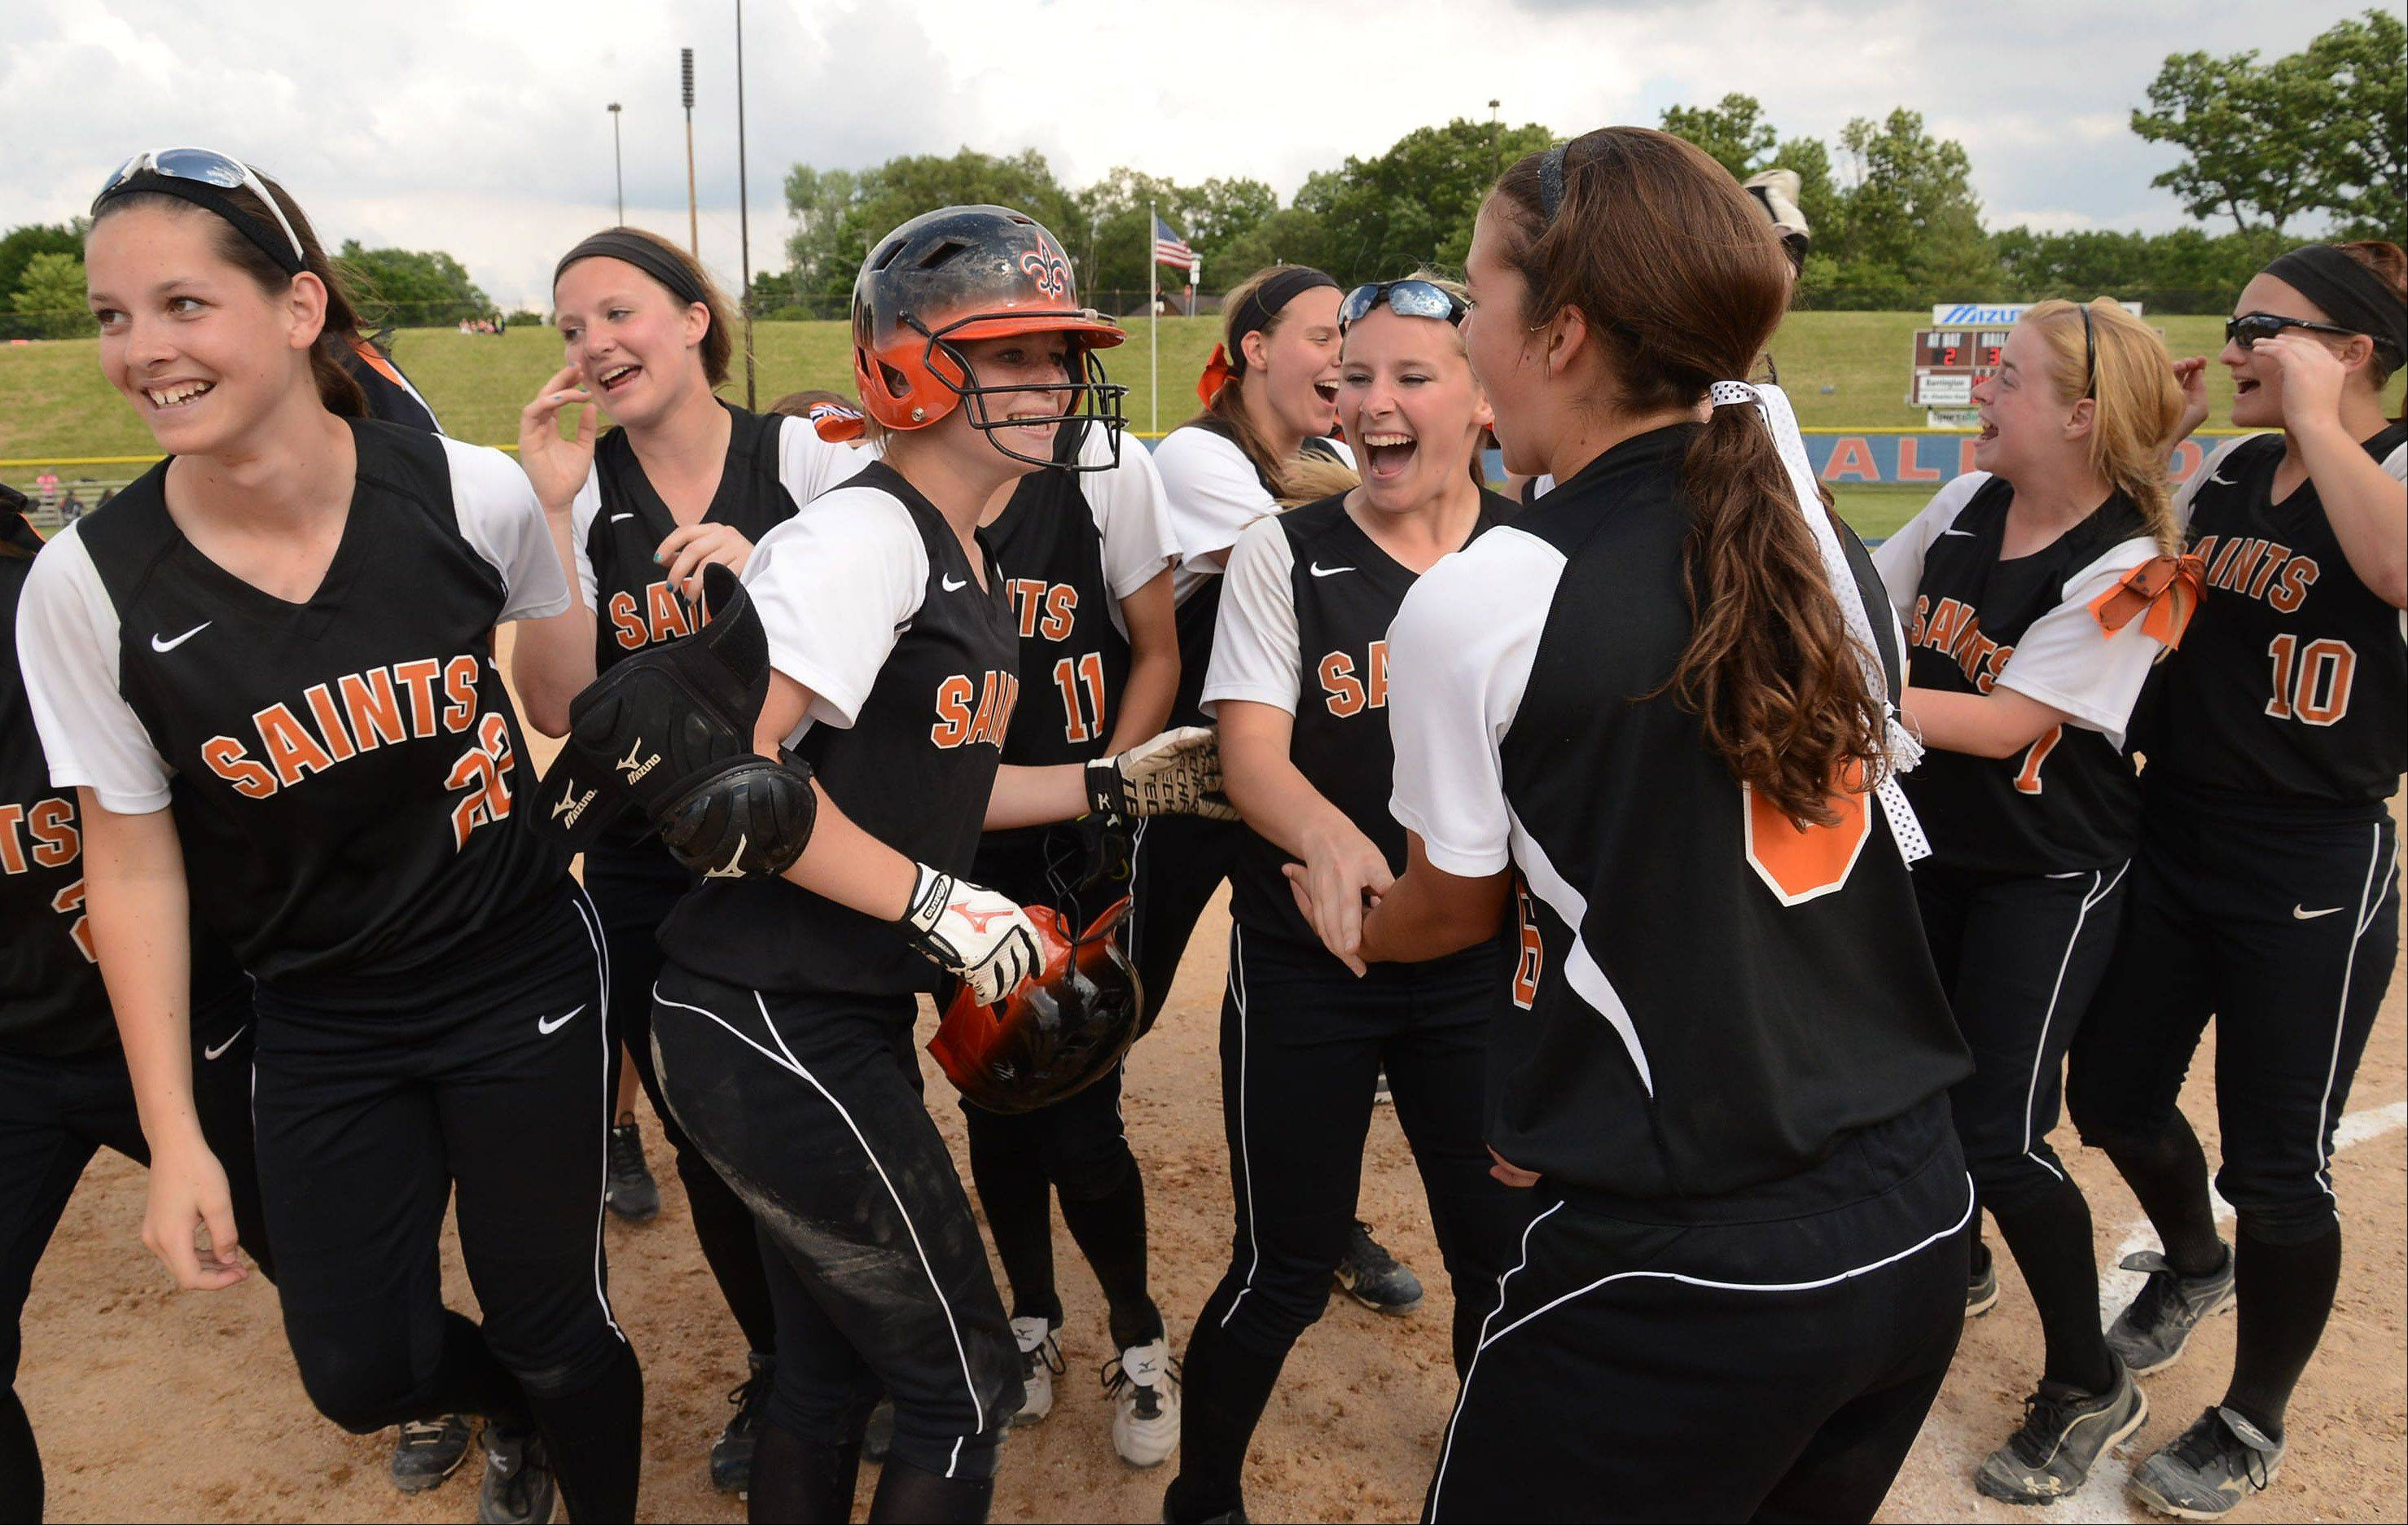 St. Charles East players celebrate.